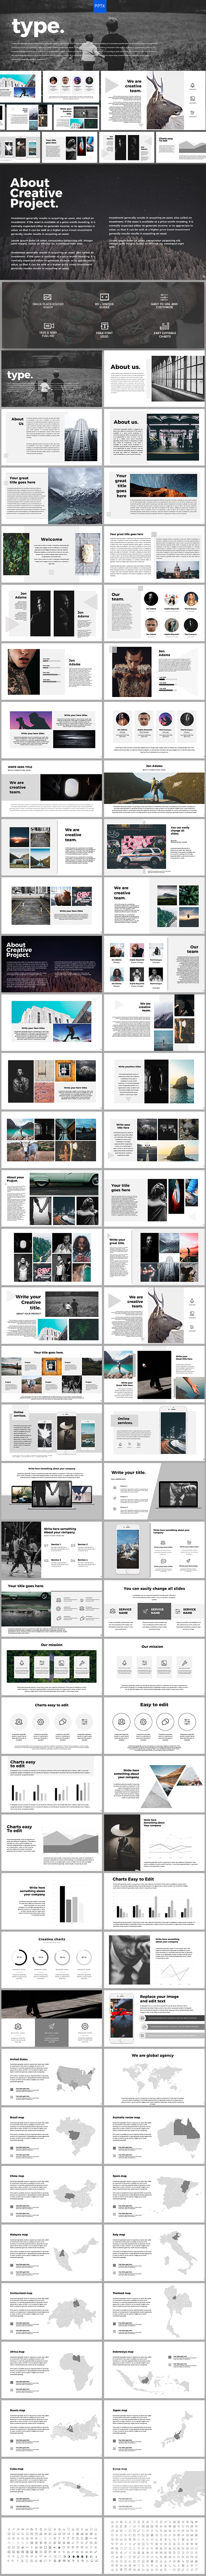 Type Powerpoint Template - PowerPoint Templates Presentation Templates